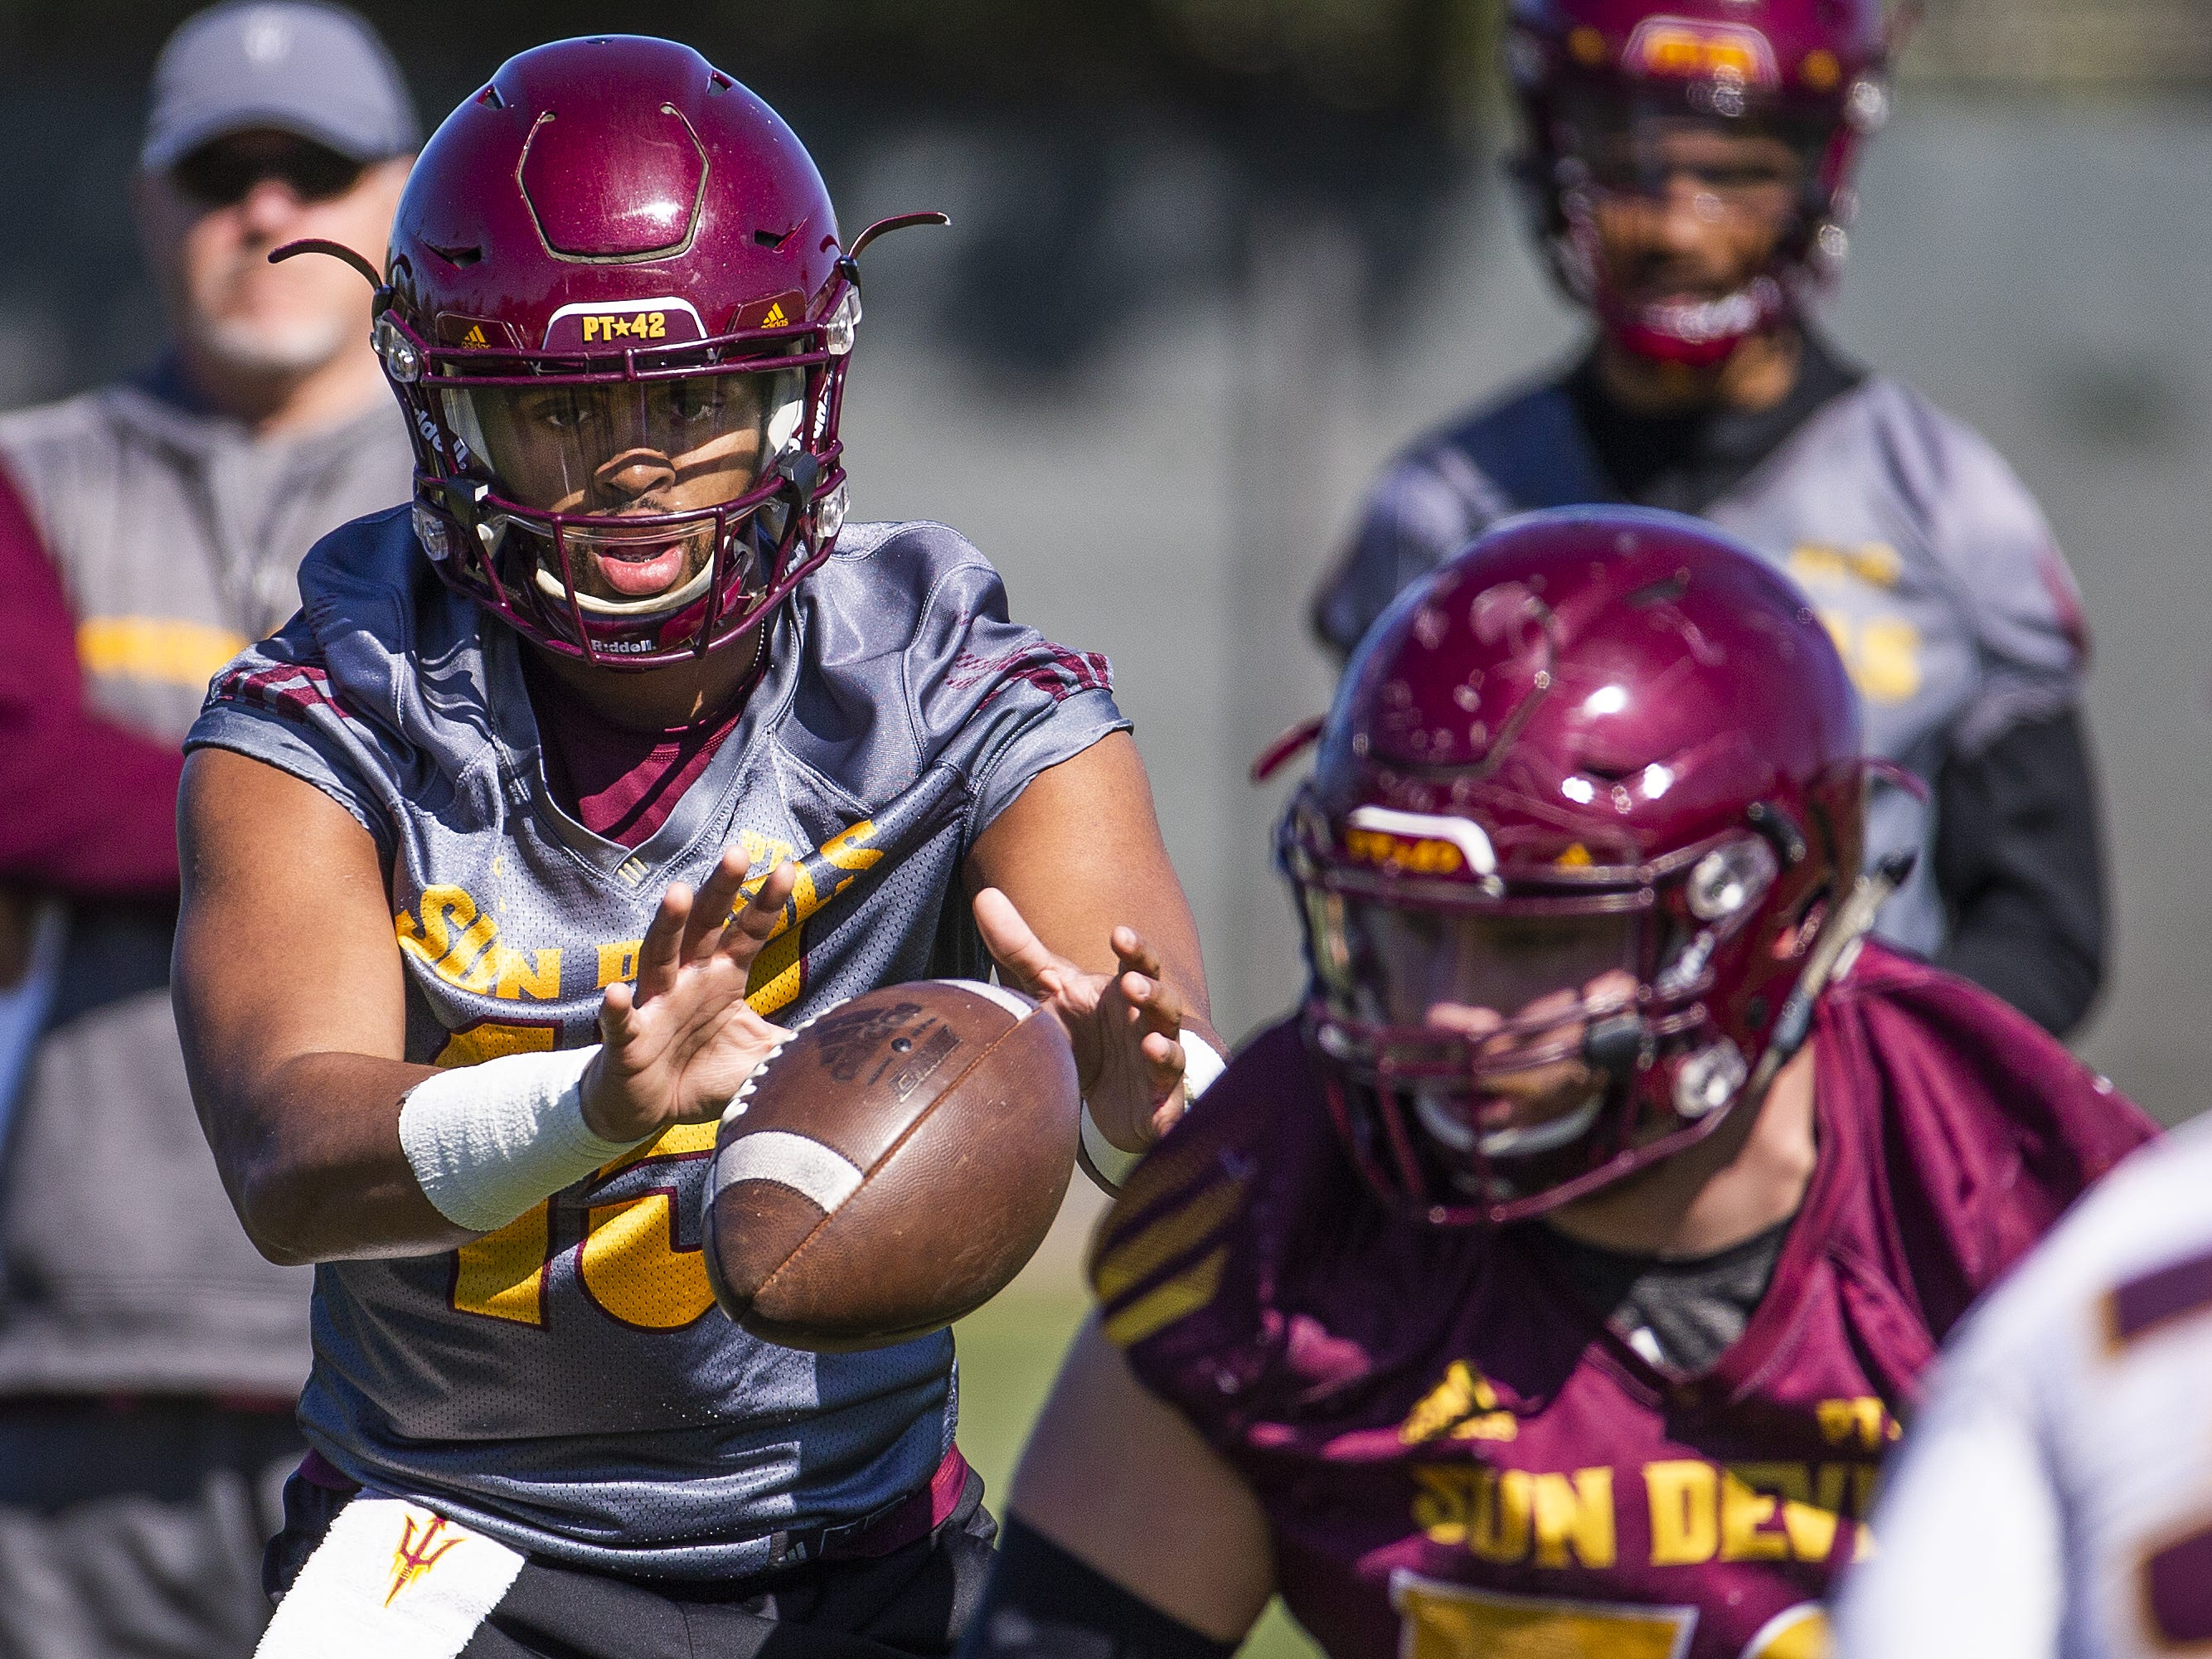 The Arizona State University football team practiced in Tempe, Tuesday, February 26, 2019.   Quarterback Dillon Sterling-Cole takes a snap.